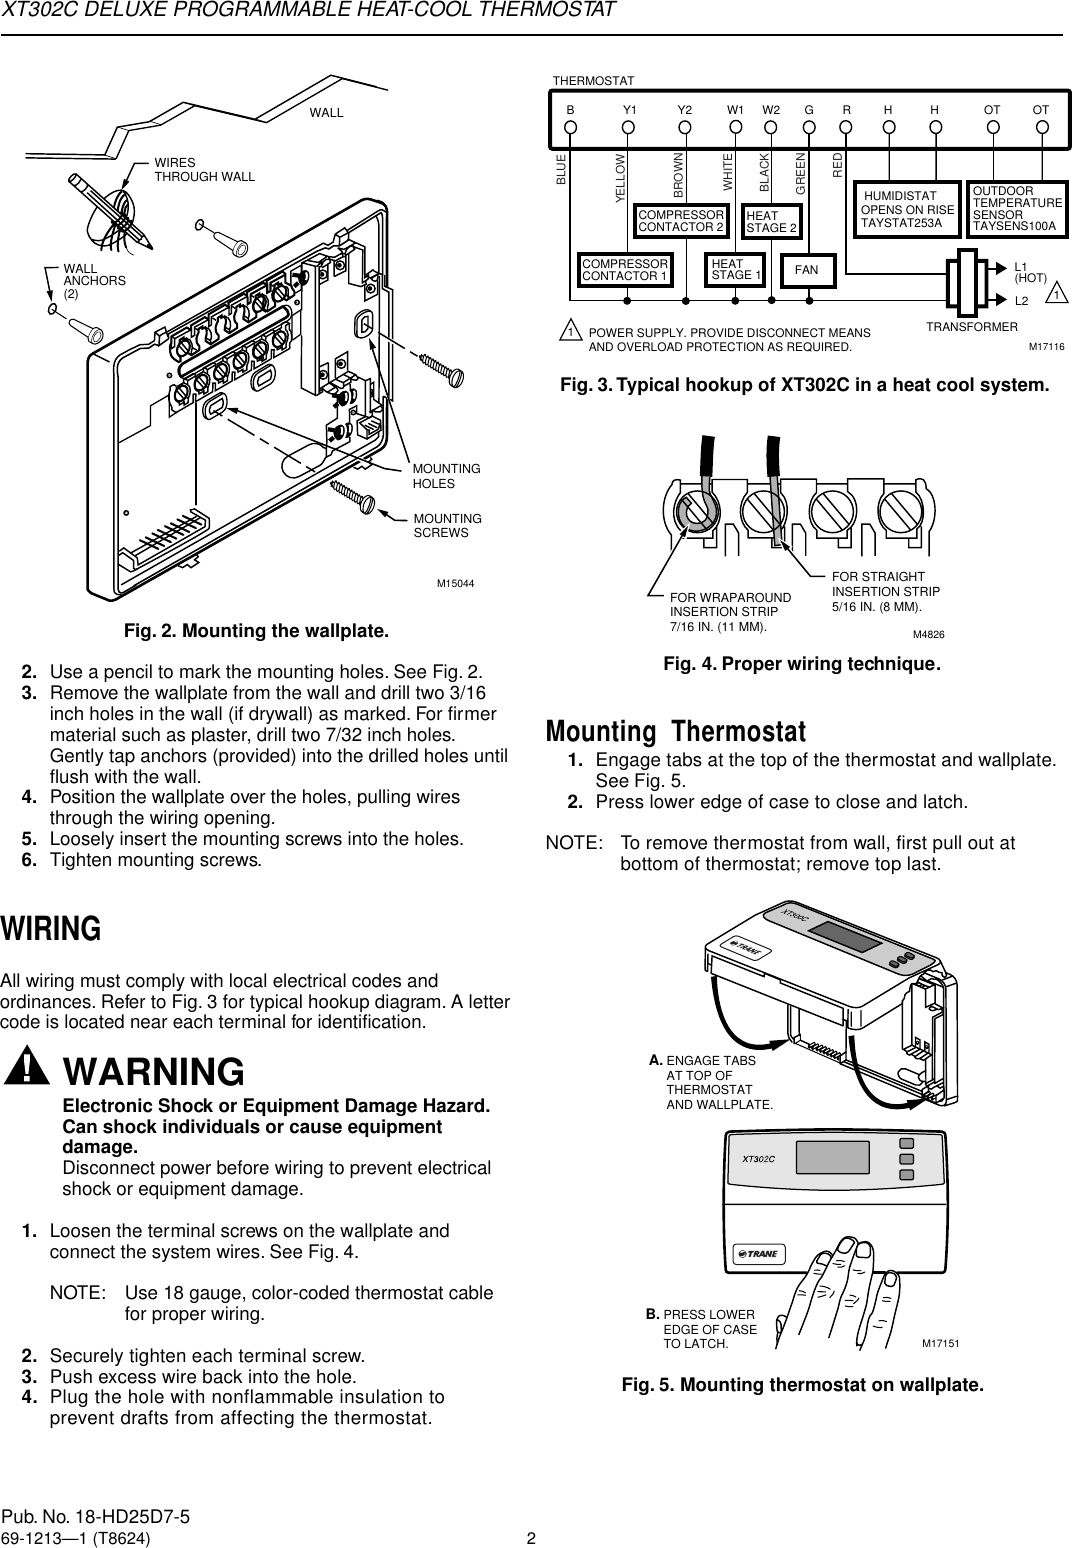 Tran Xt300c Thermostat Wiring Diagram Page 3 And Trane Baystat 239 2 Of 12 Xt302c Users Manual 69